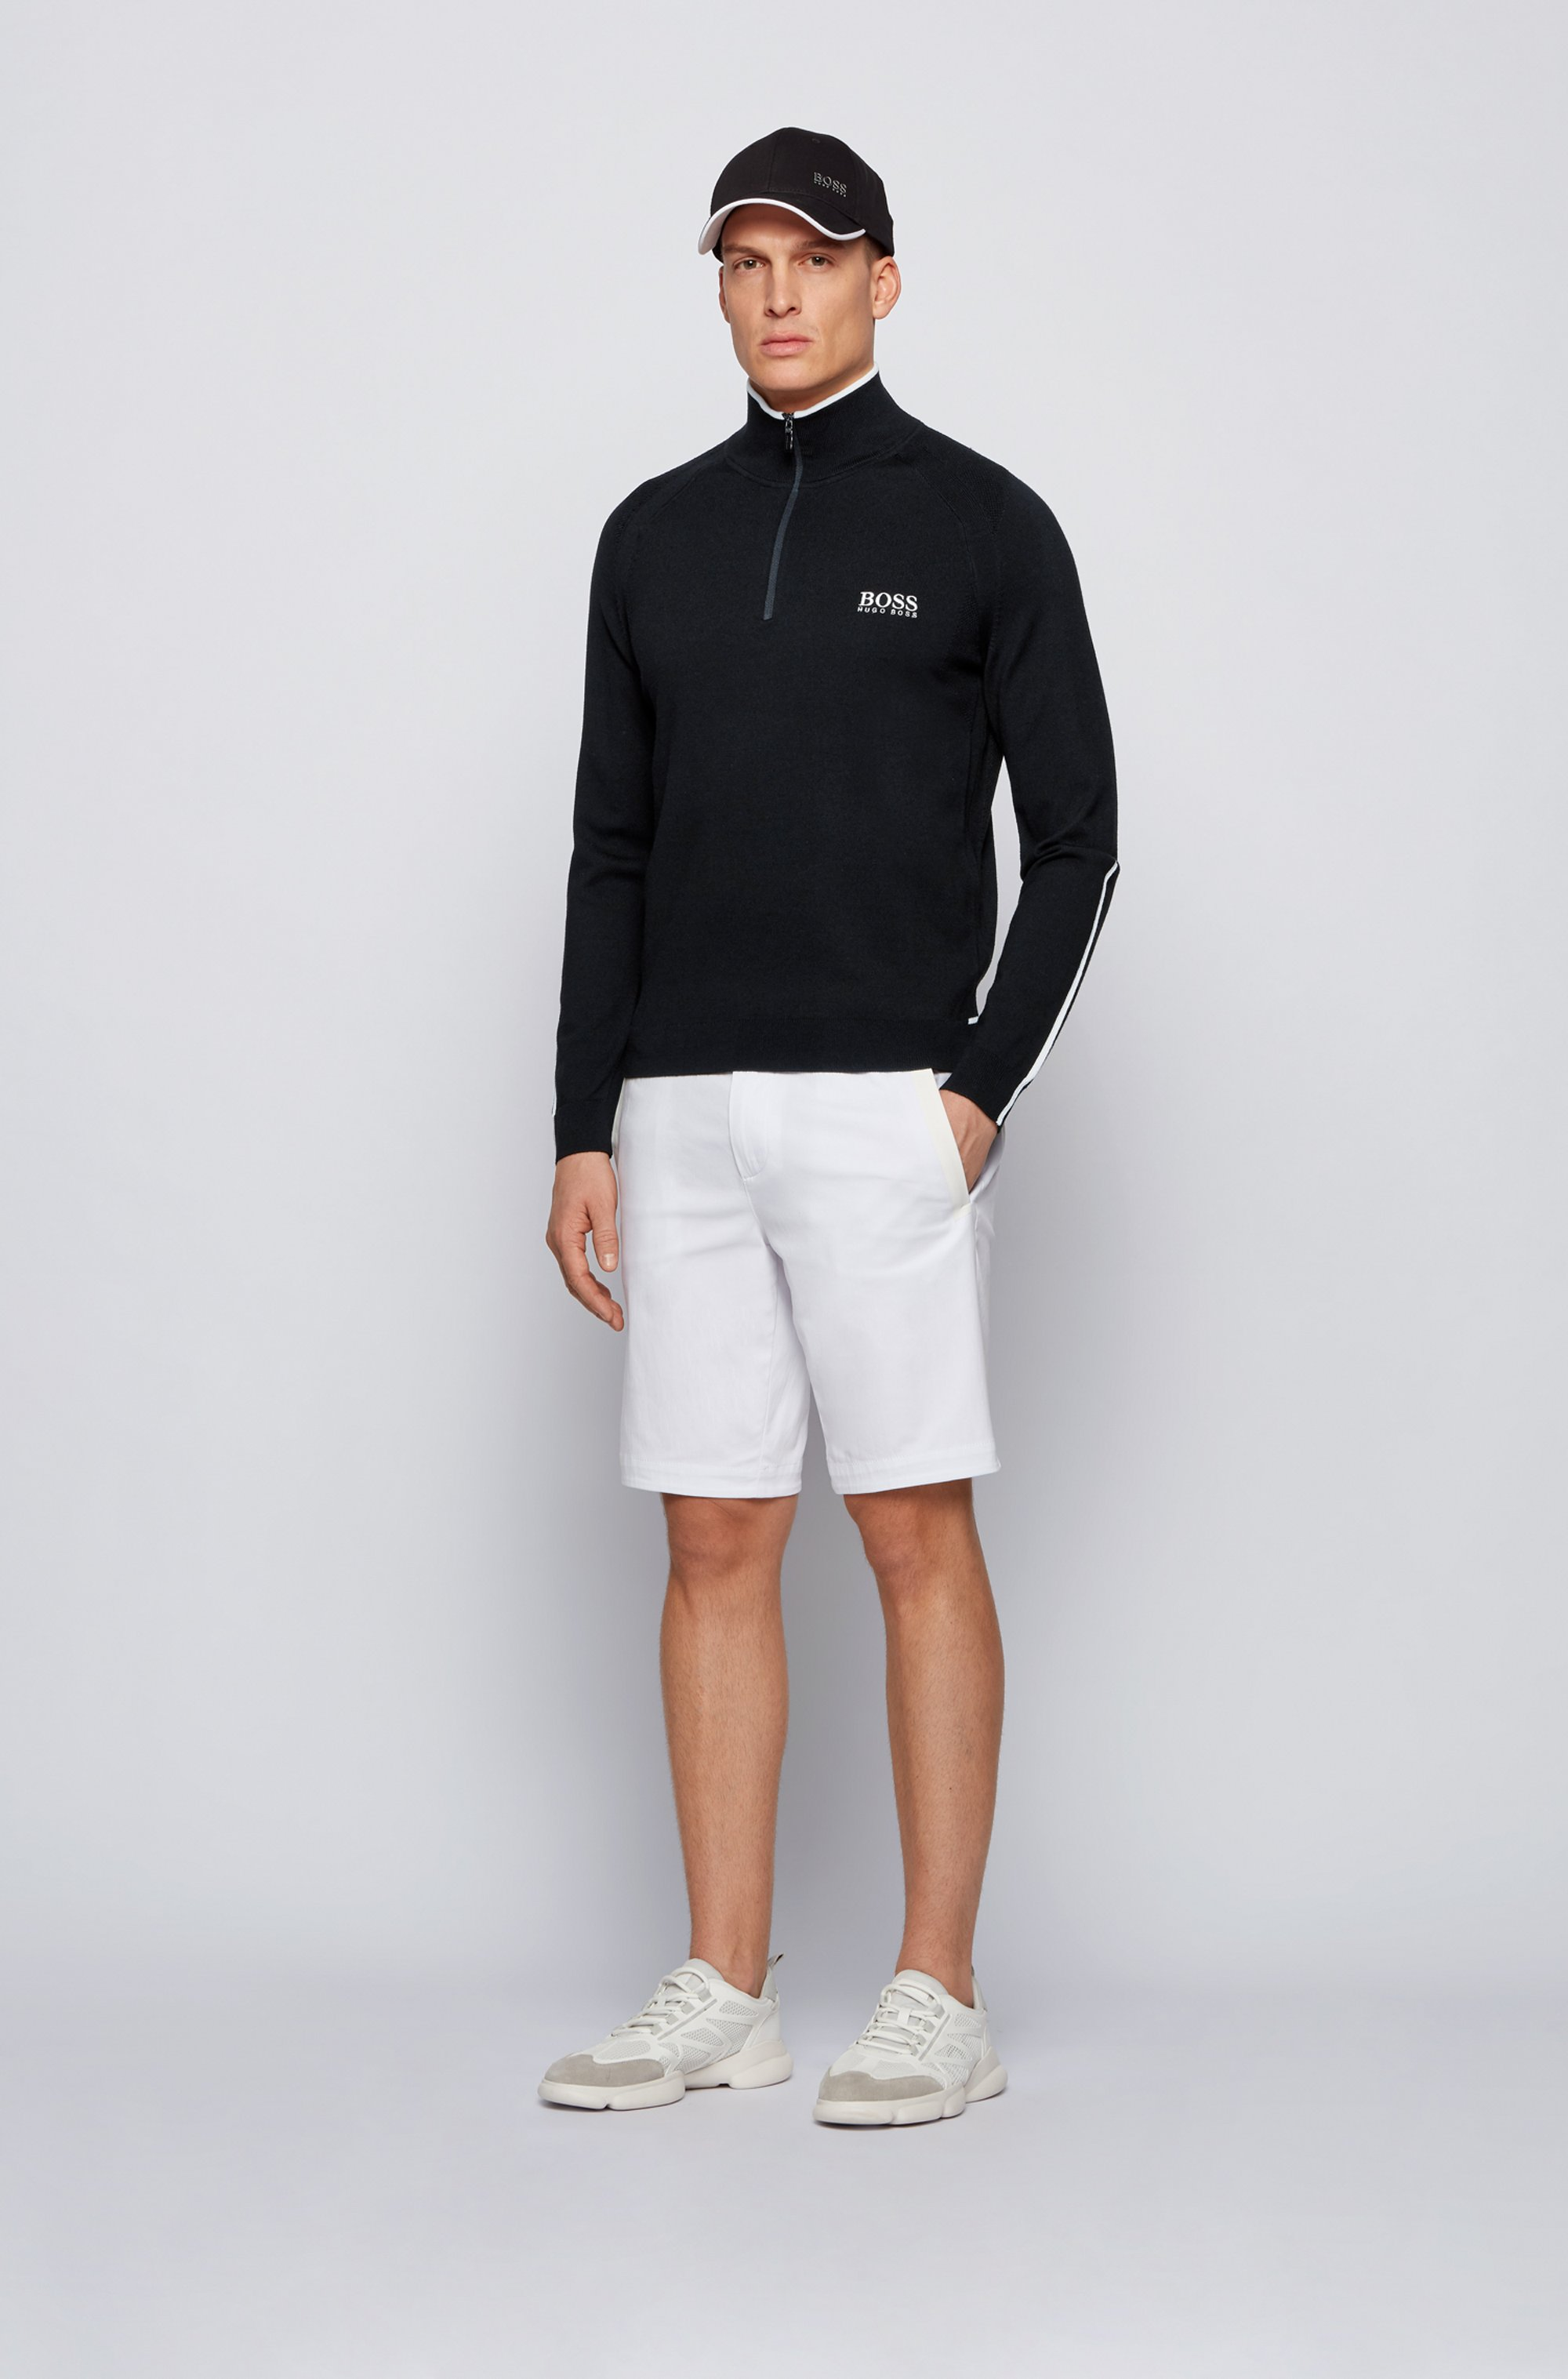 Regular-fit zip-neck sweater with logo embroidery